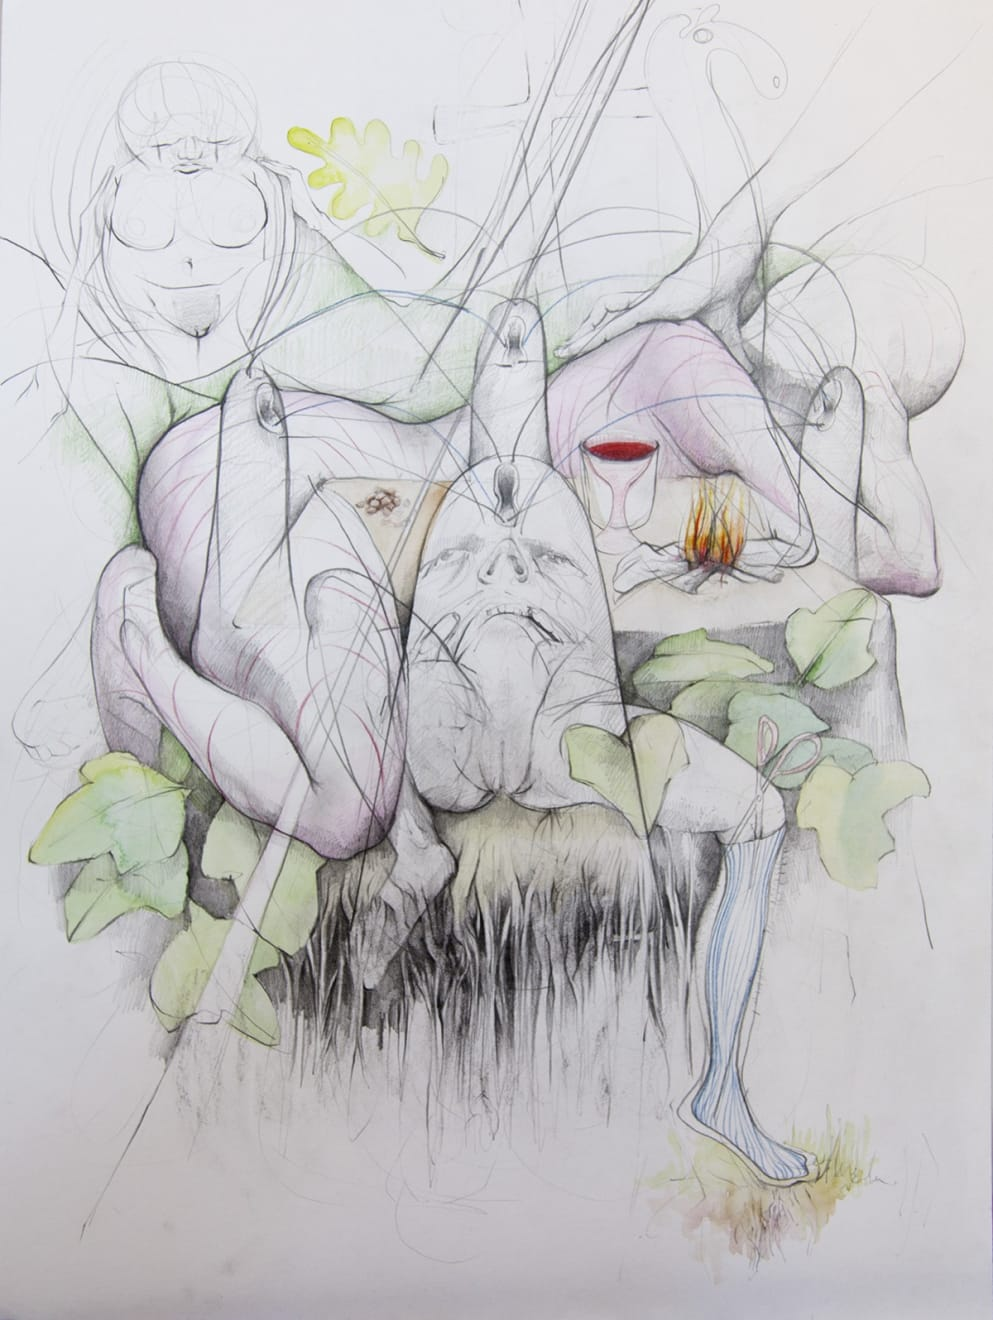 Kirsty Whiten, Intuiative Drawing (Lindsay), 2019 Pencil and watercolour on paper, 42 x 56 cm